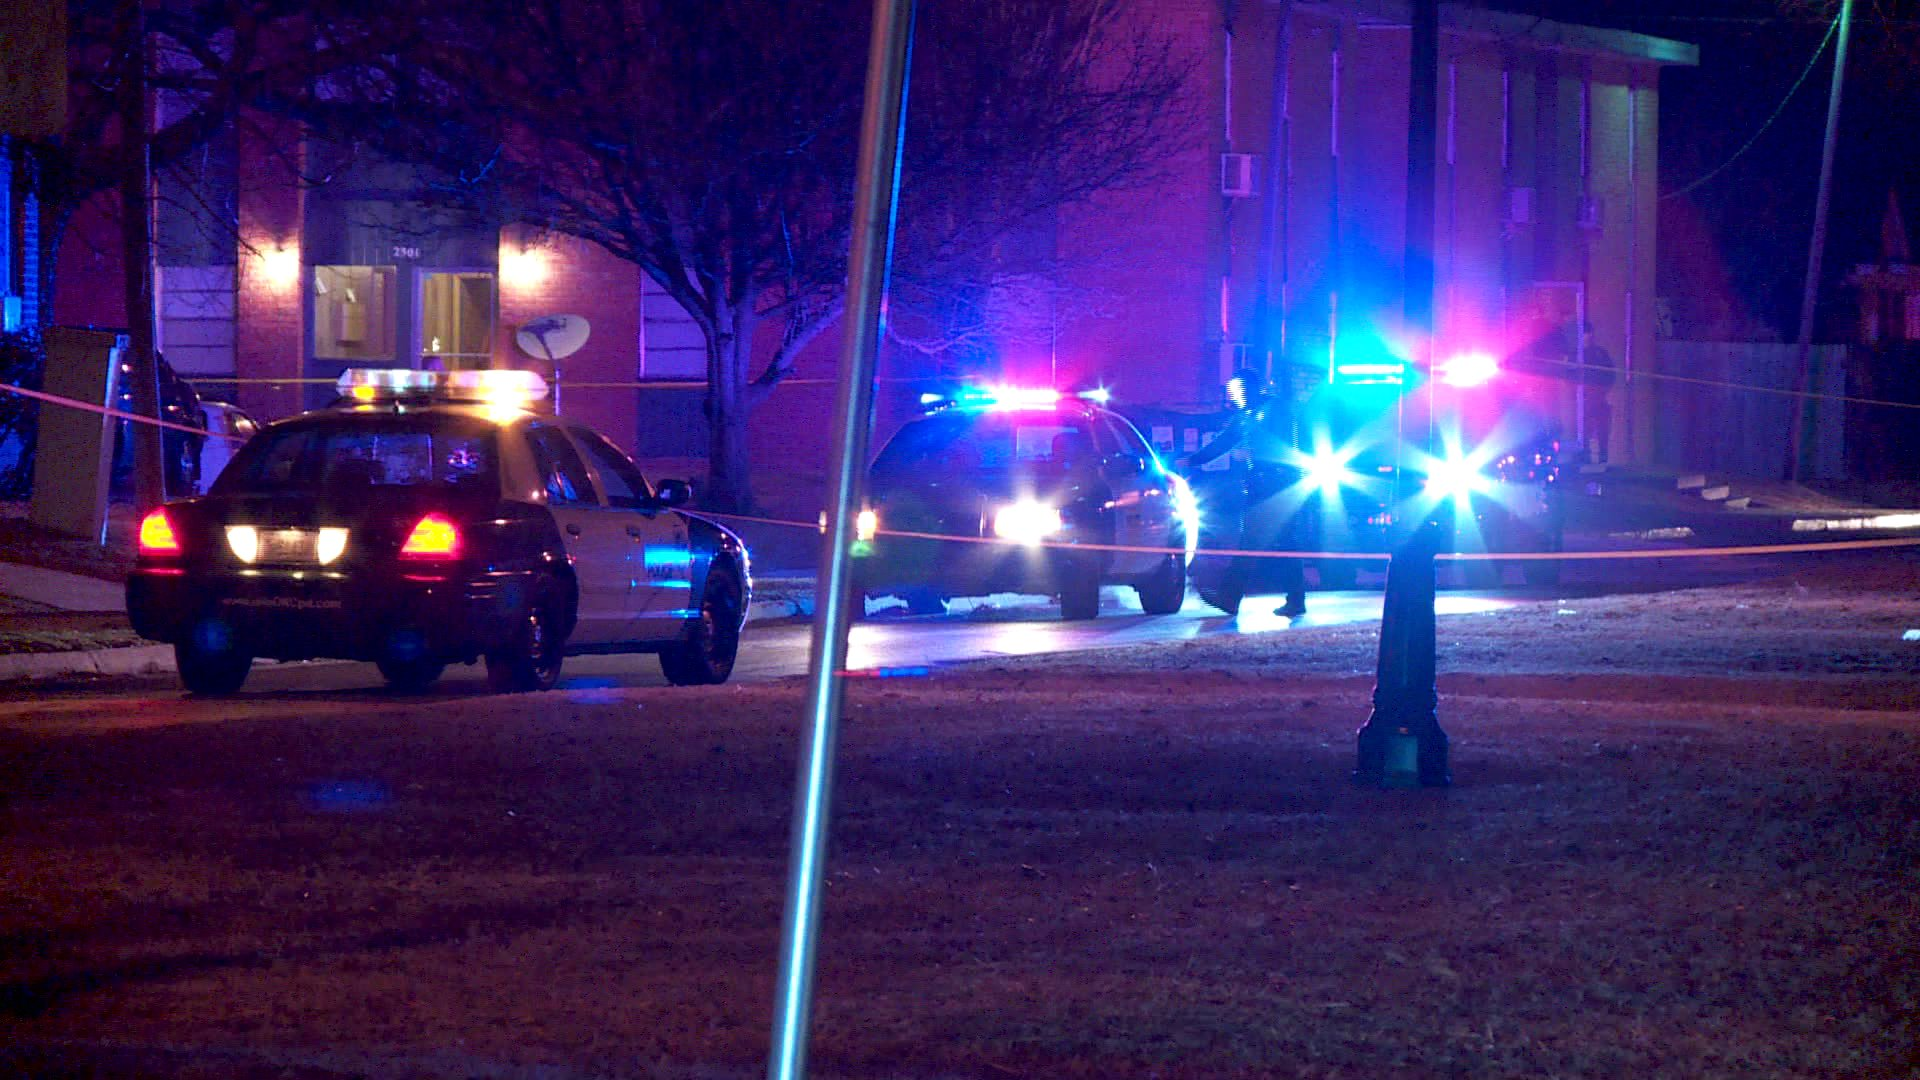 Man found shot to death inside vehicle near N.W. 18th and Youngs Blvd.